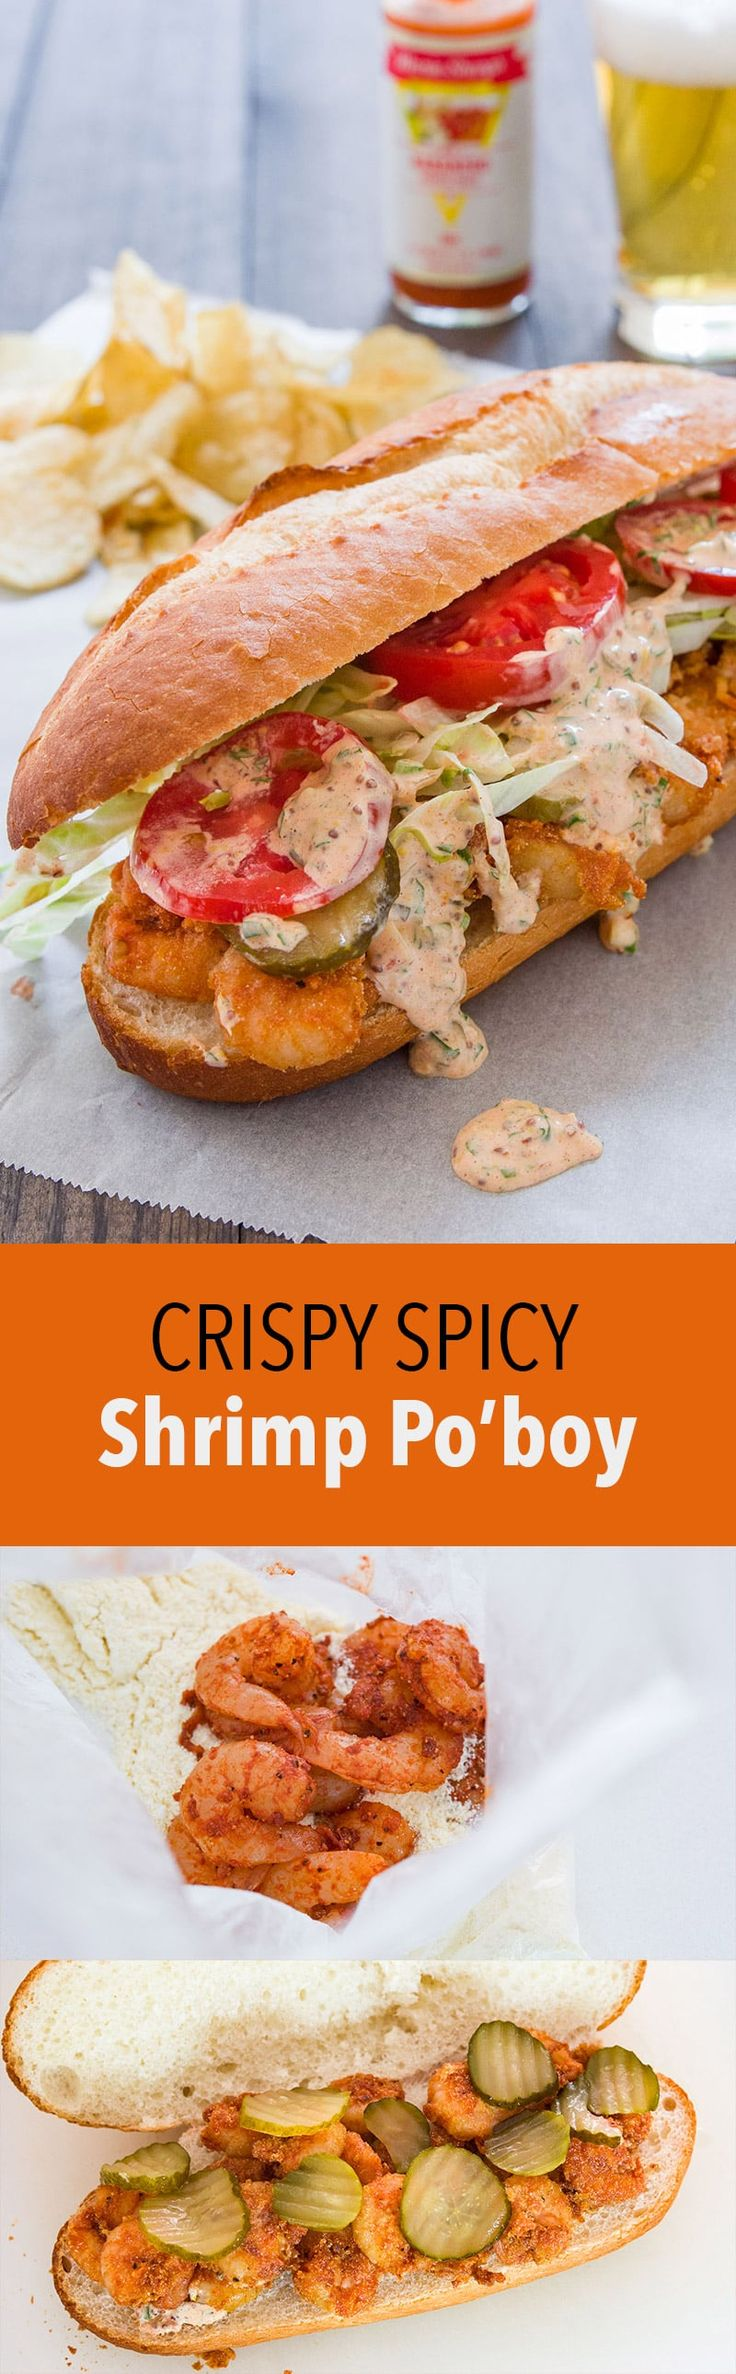 The best Po'boy sandwich with crispy spicy shrimp and a creamy tangy remoulade.